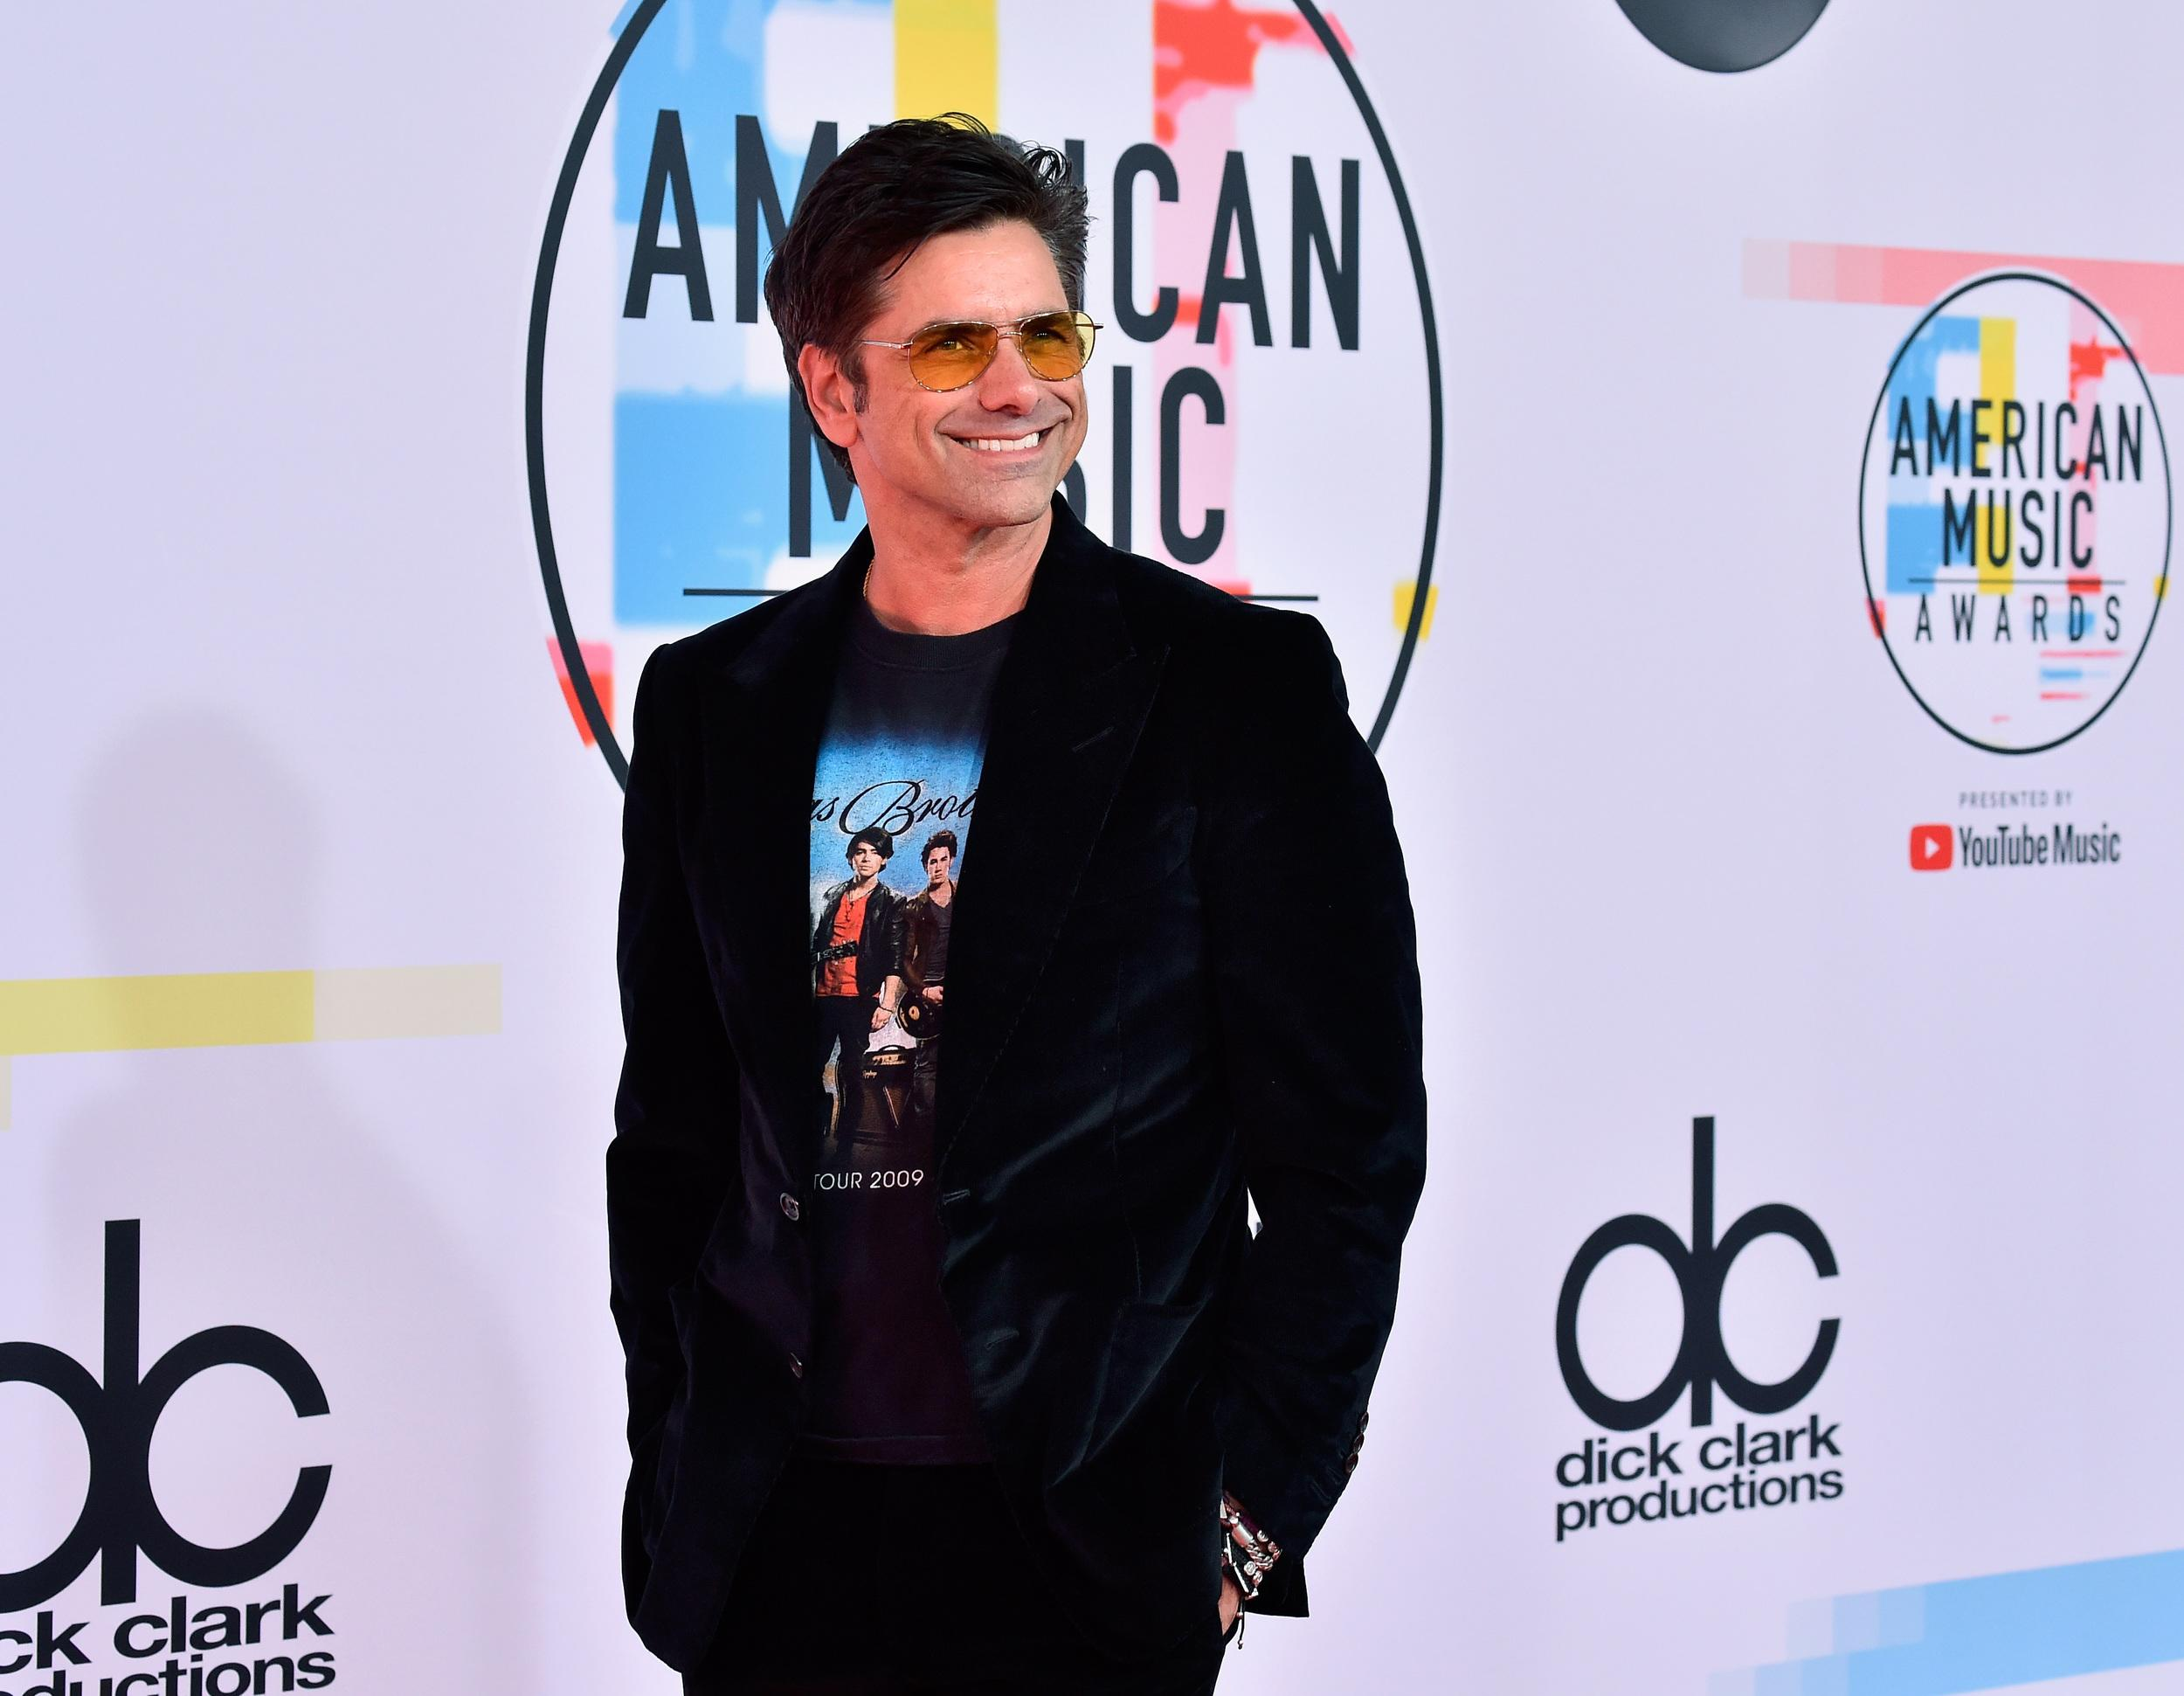 LOS ANGELES, CA - OCTOBER 09: John Stamos attends the 2018 American Music Awards at Microsoft Theater on October 9, 2018 in Los Angeles, California. (Photo by Frazer Harrison/Getty Images)